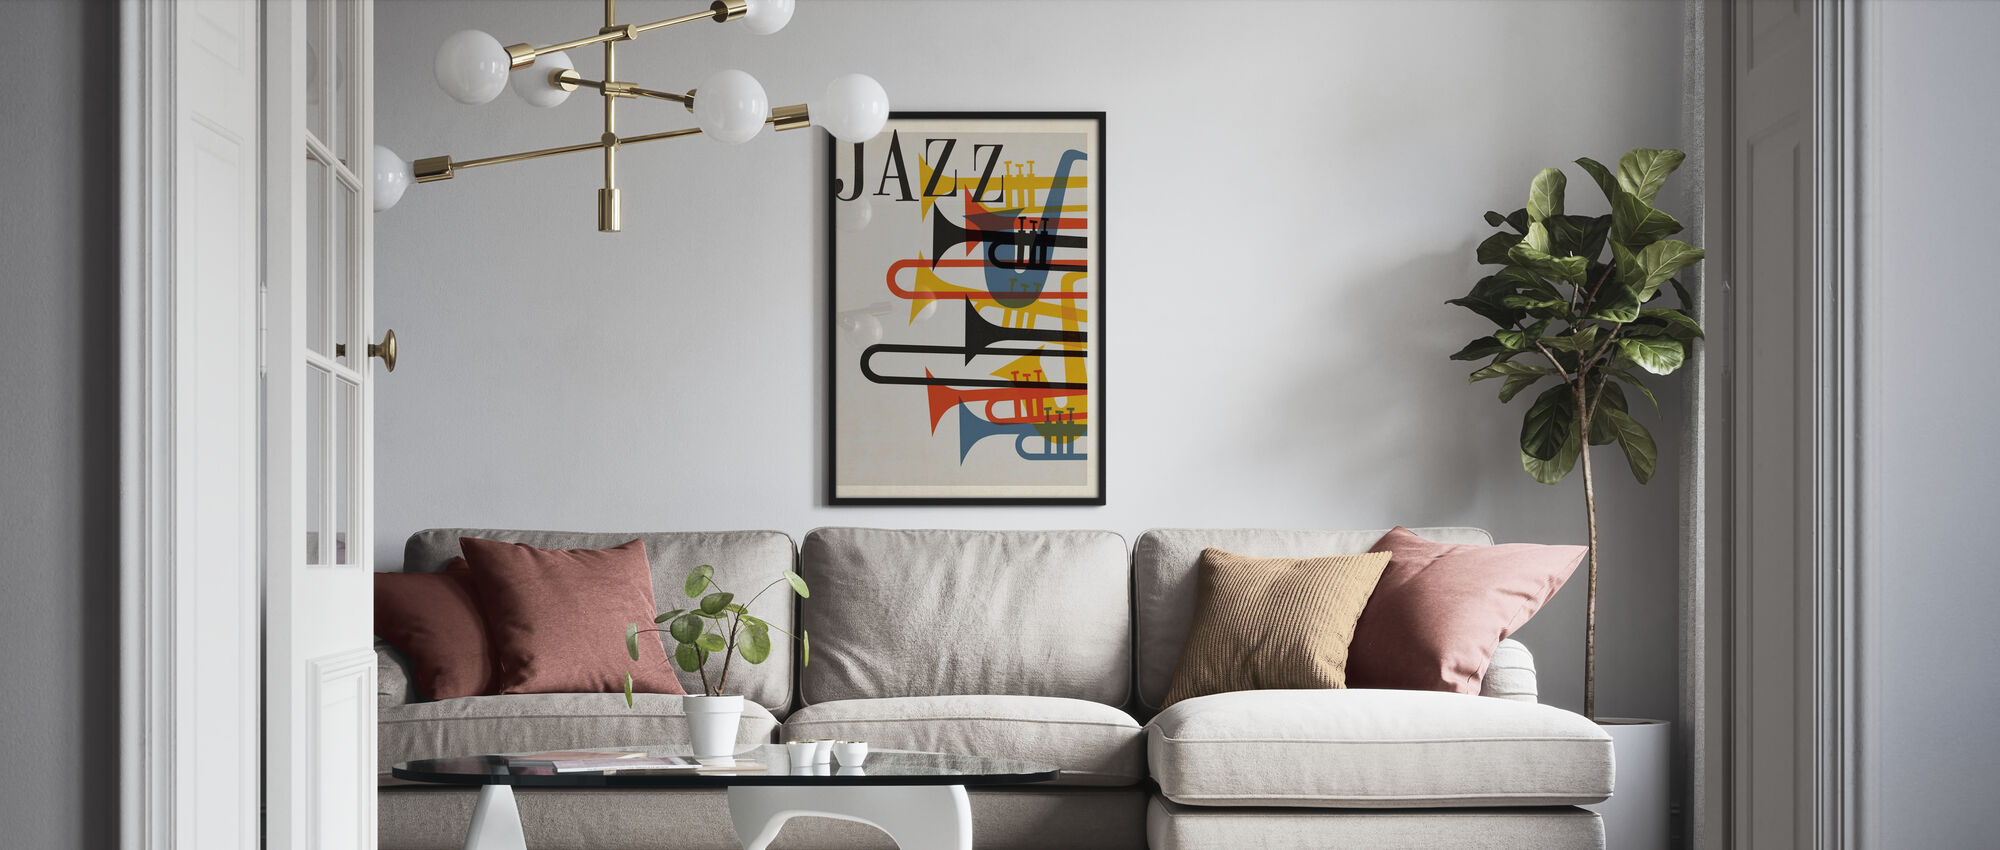 Jazz - Poster - Living Room